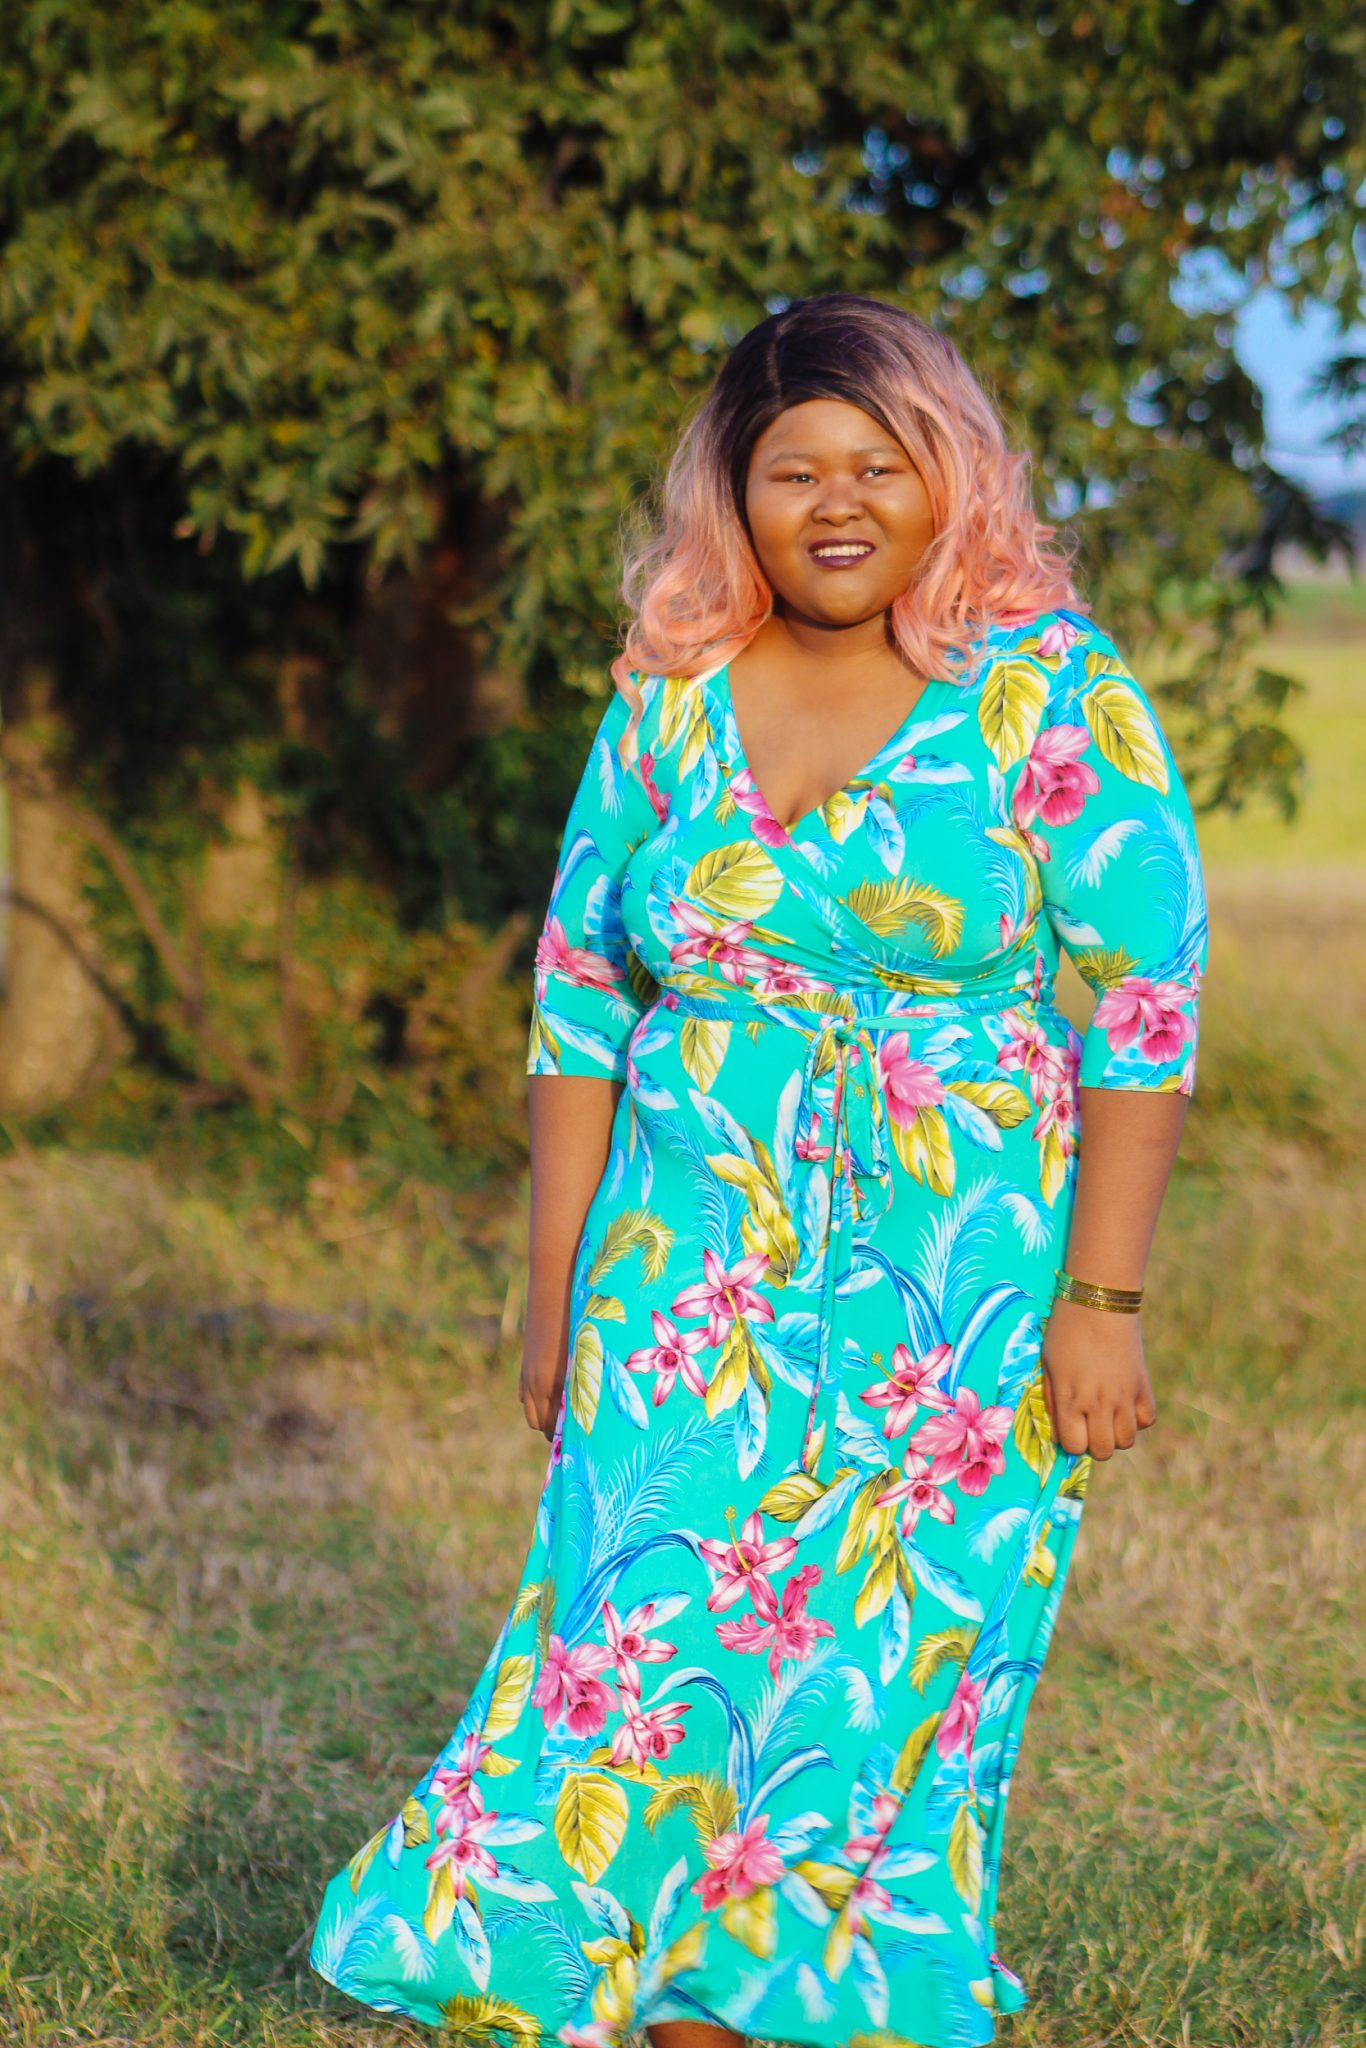 Now Listening: 100 More Fantastic Rock Songs And A Floral Outfit Of The Day | Do you like rock music and fashion? Check out my article where I list some more of my favorite rock songs while showcasing the cutest floral maxi dress I've ever seen. #FashionBlogger #StyleBlogger #CurvyBlogger #PlusSizeFashion #PlusSizeBlogger #MusicRecommendations